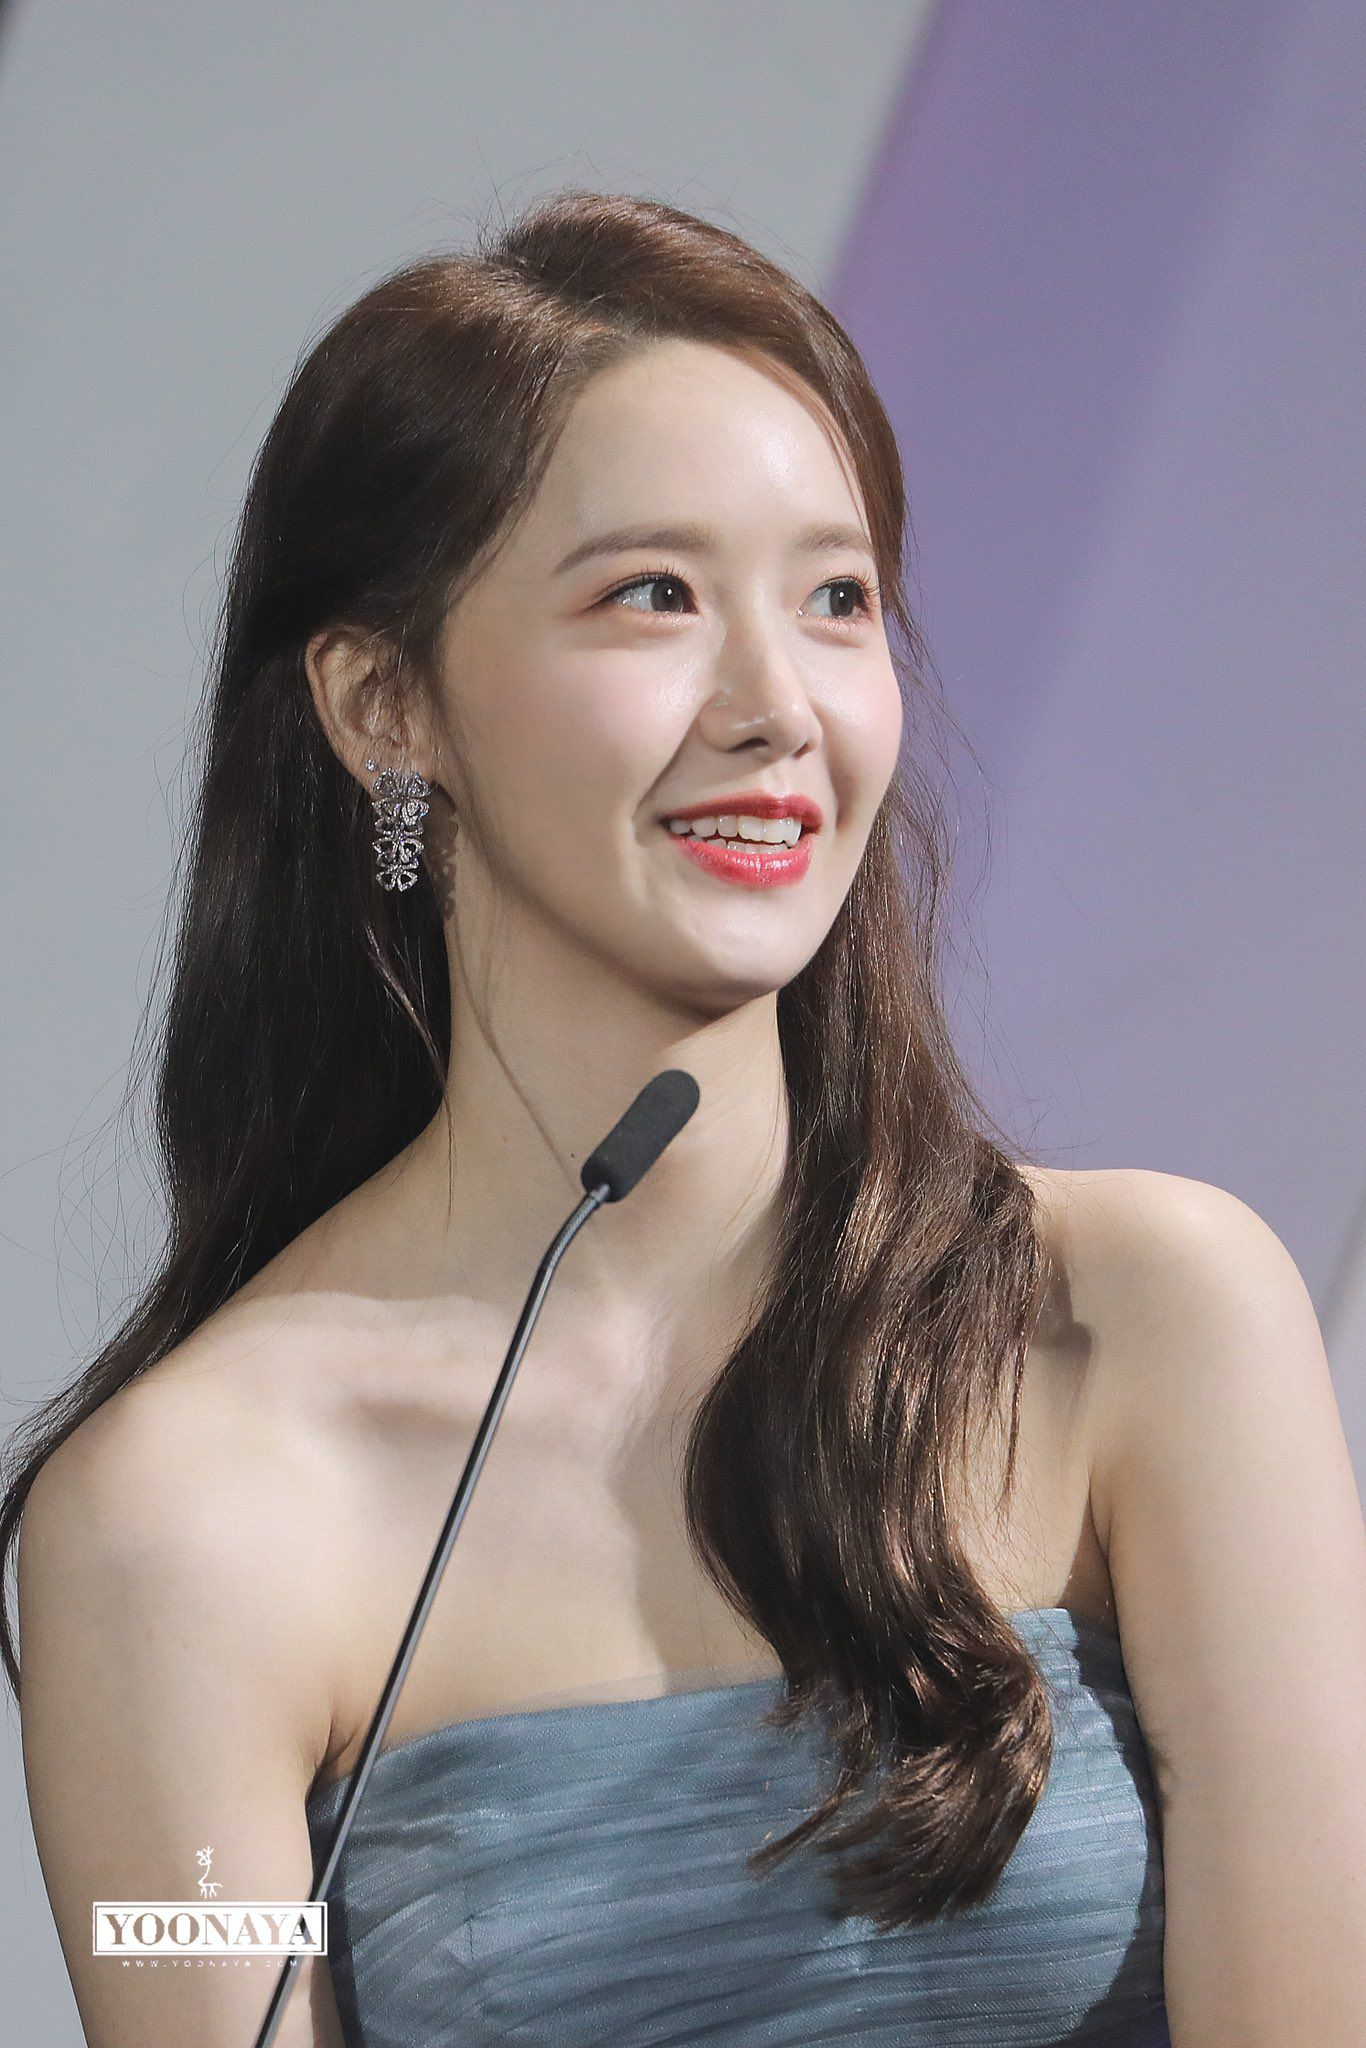 YOONAYA윤아야 on in 2020 (With images)